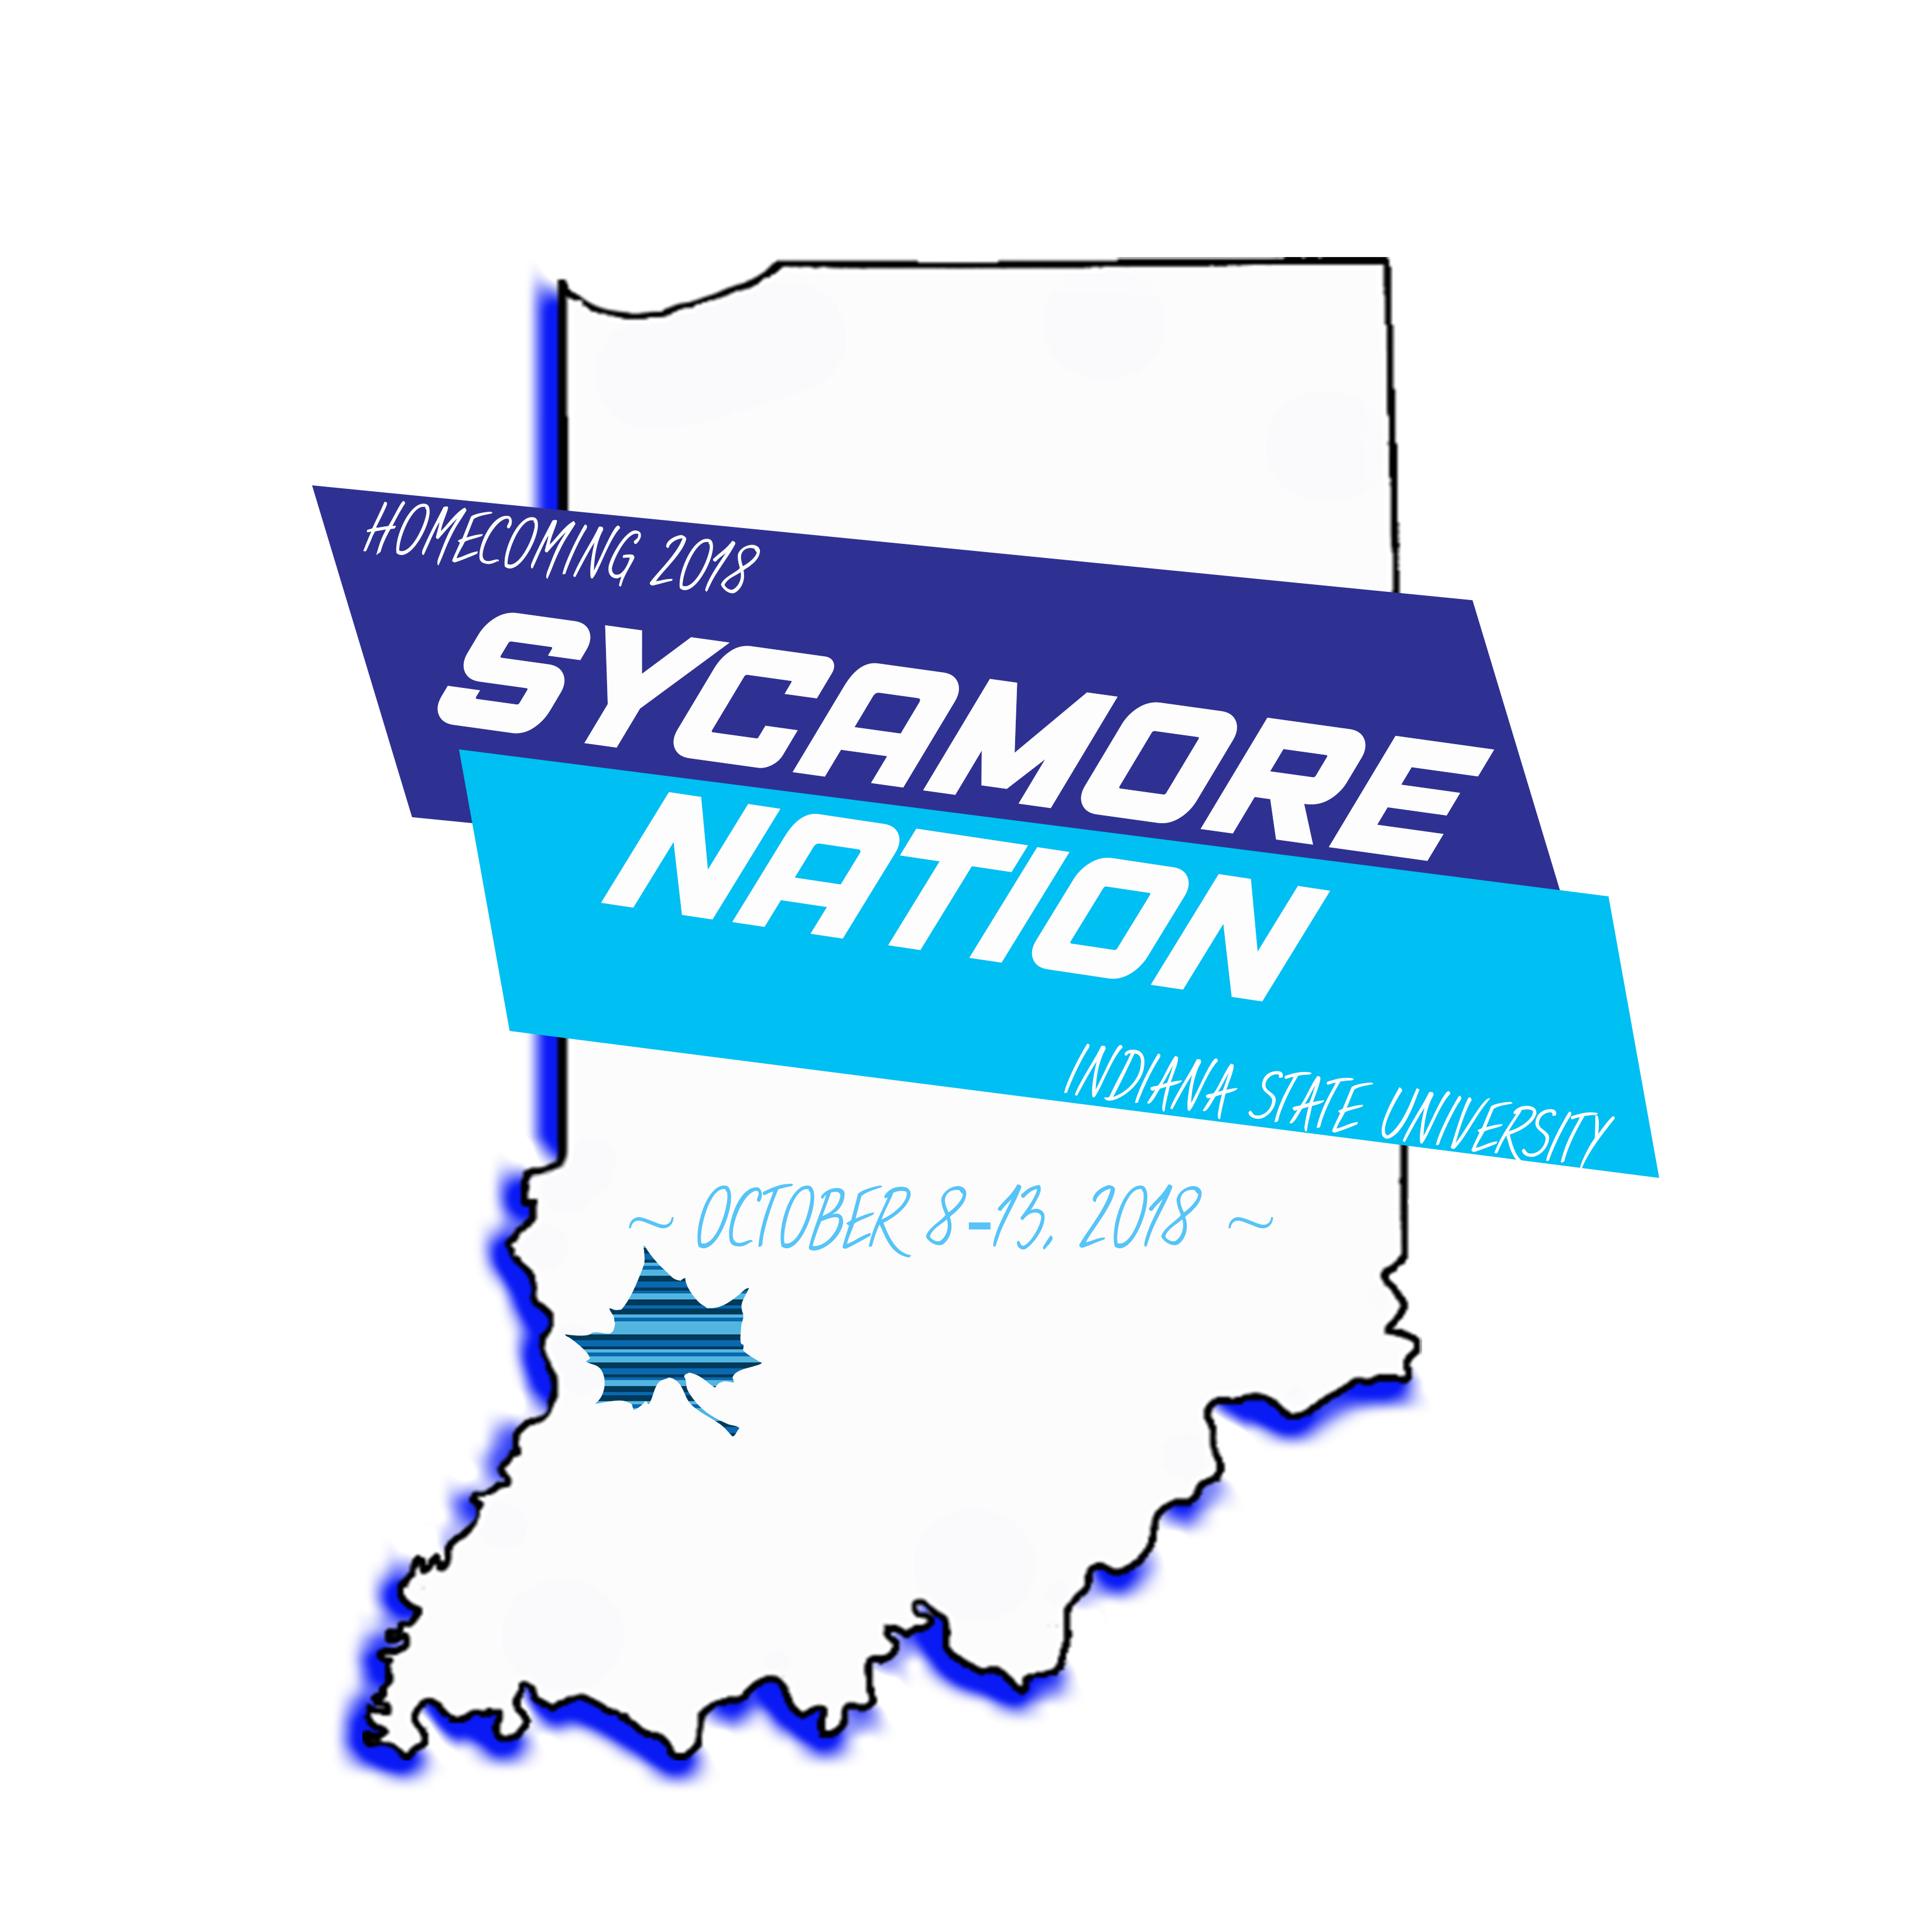 Sycamore Nation